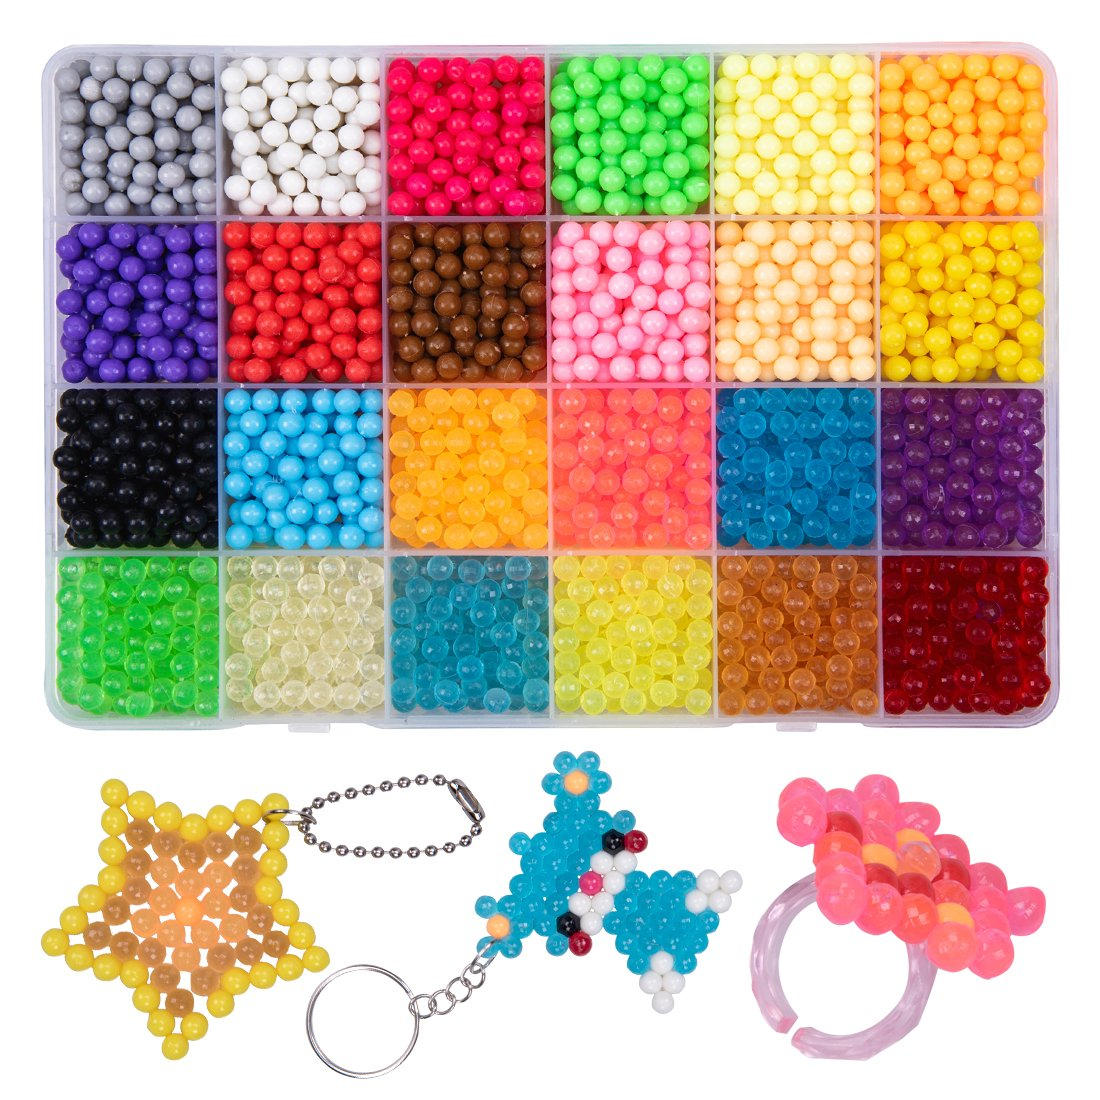 GARUNK Fuse Beads Refill, 24 Colors Water Spray Craft Beads Set Compatible with Aquabeads and Beados Art Crafts Toys for Kids Beginners 3200 Classic and Jewel Beads with DIY Pegboard Kits